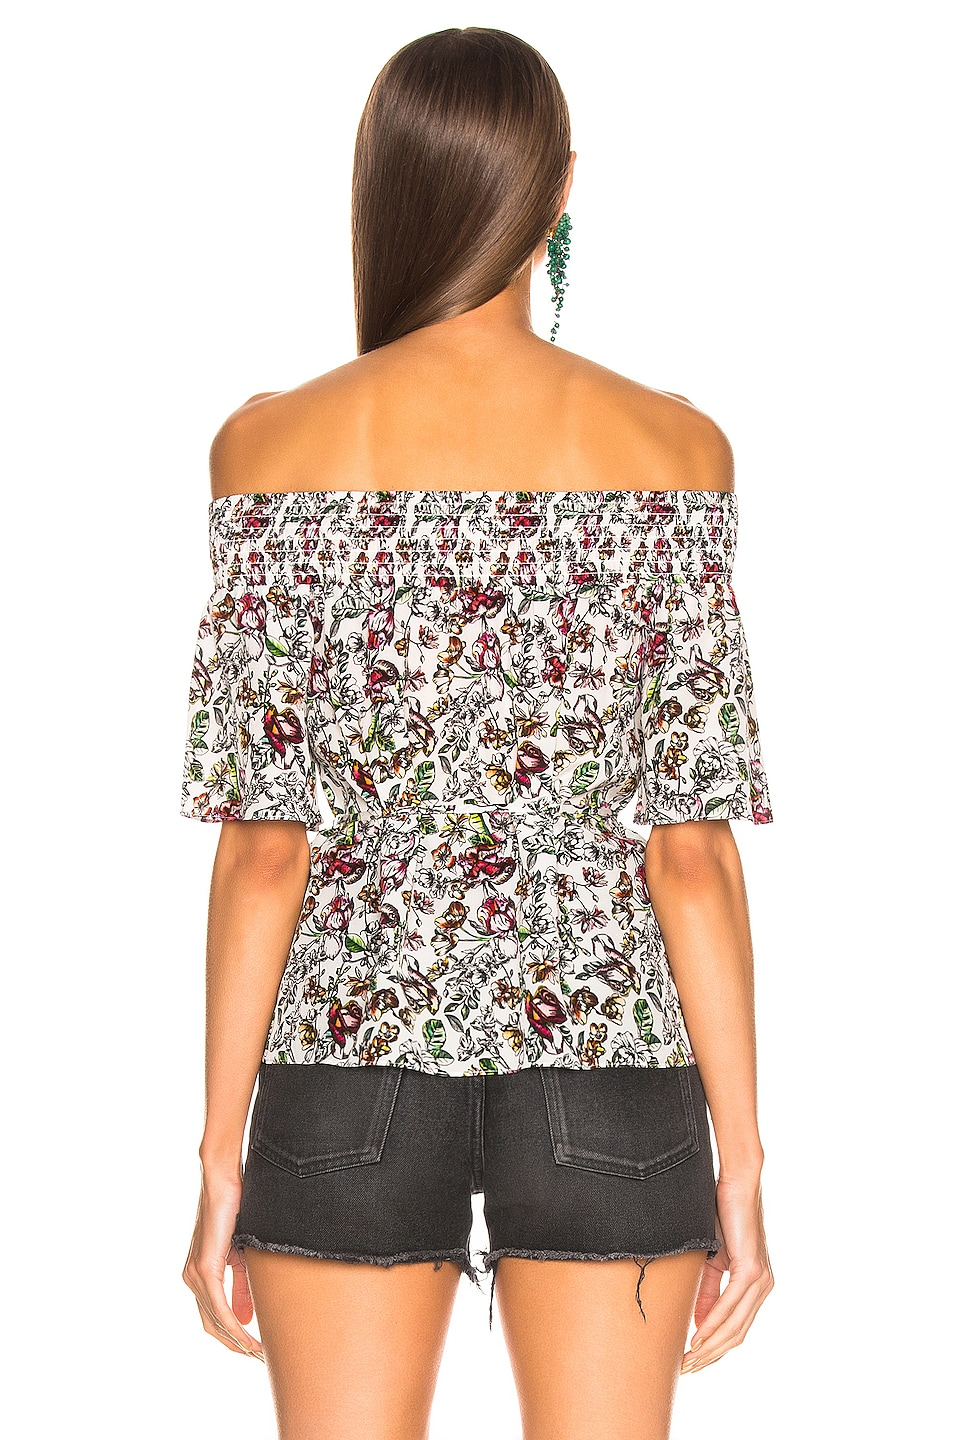 Image 3 of L'AGENCE Lucia Off Shoulder Smocked Blouse in Ivory Multi Floral